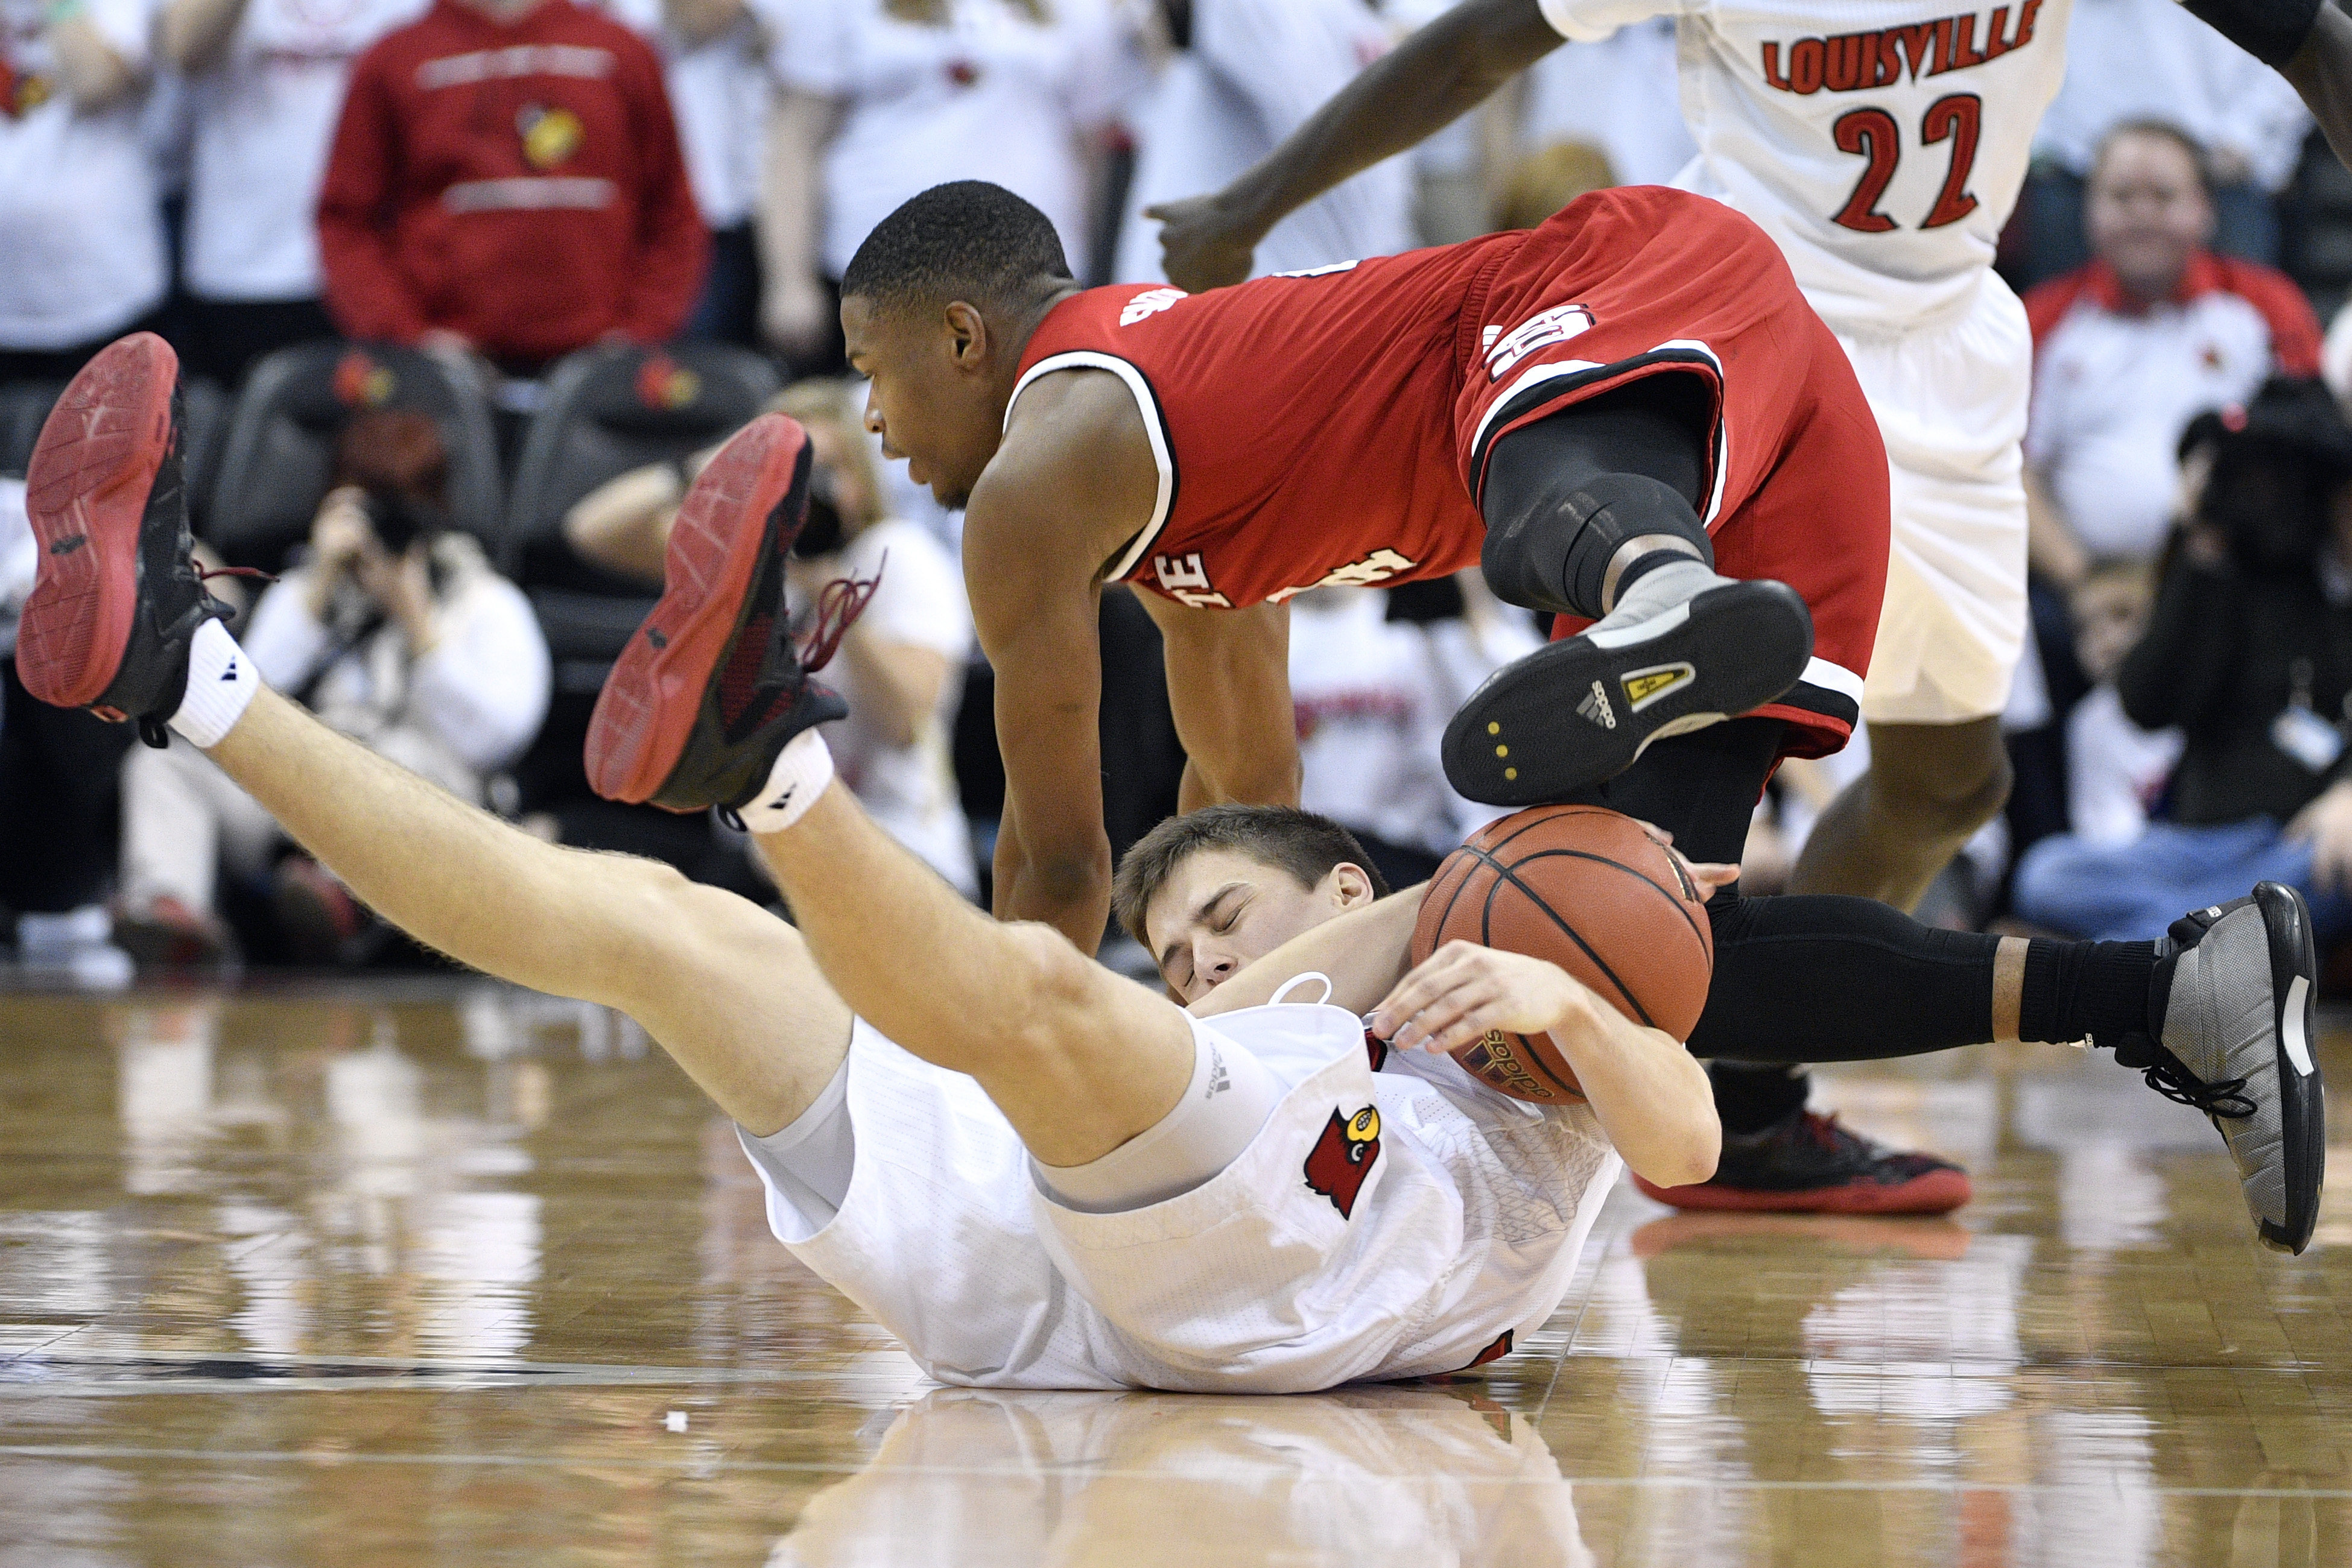 Jan 29, 2017; Louisville, KY, USA; North Carolina State Wolfpack guard Dennis Smith Jr. (4) falls over Louisville Cardinals guard David Levitch (23) while scrambling for the ball during the second half at KFC Yum! Center. Louisville defeated North Carolina State 85-60. Mandatory Credit: Jamie Rhodes-USA TODAY Sports